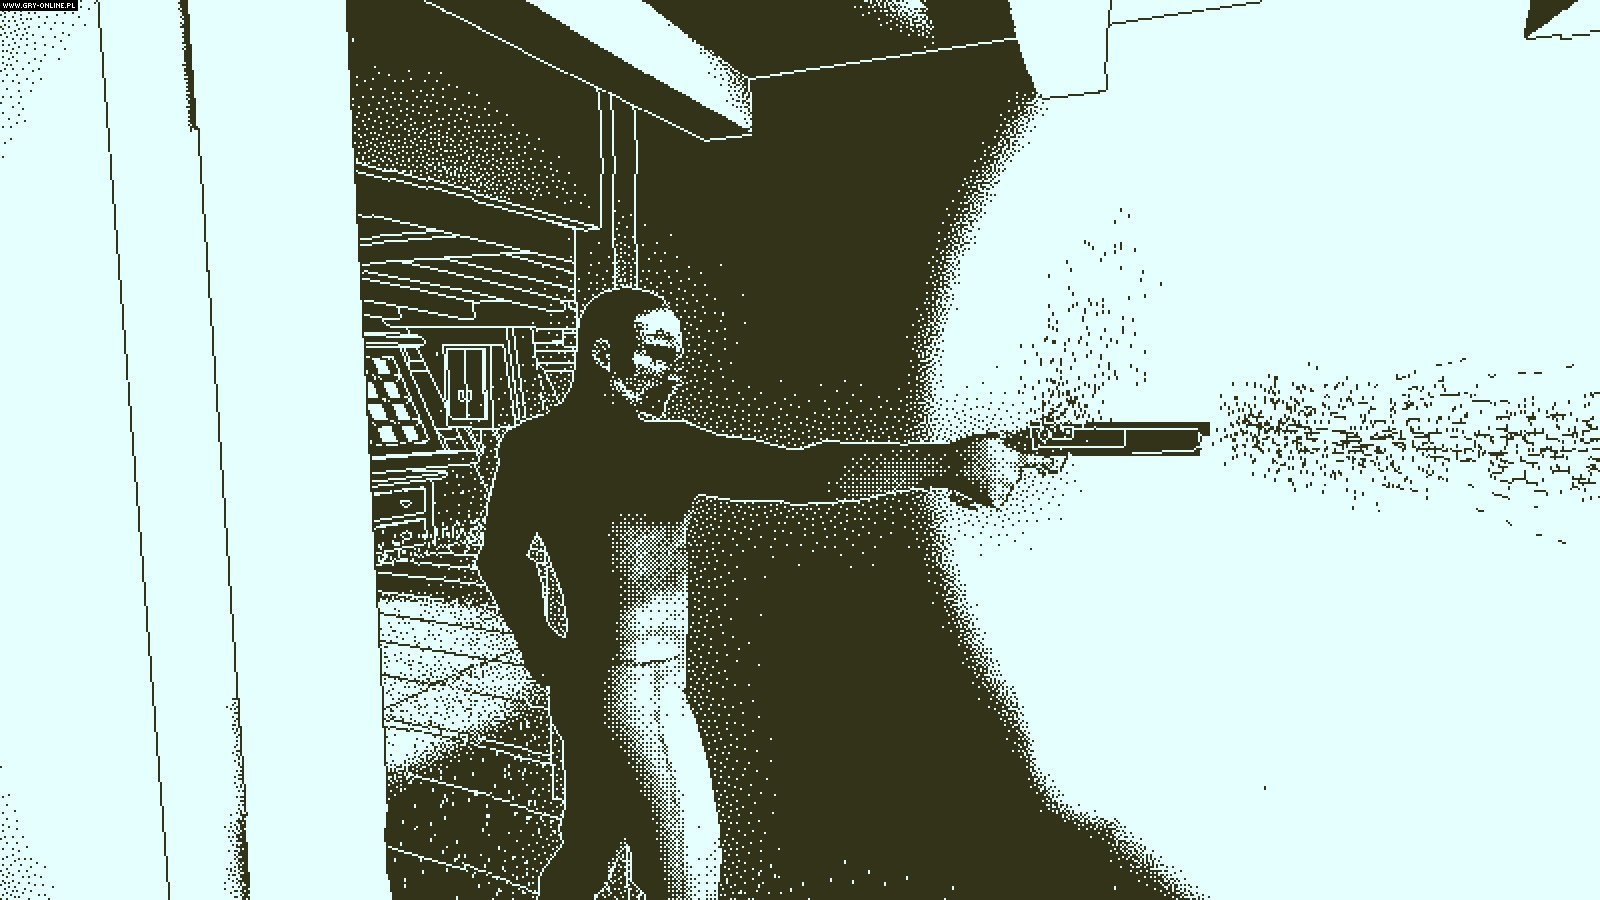 Return of the Obra Dinn PC Games Image 4/18, Lucas Pope